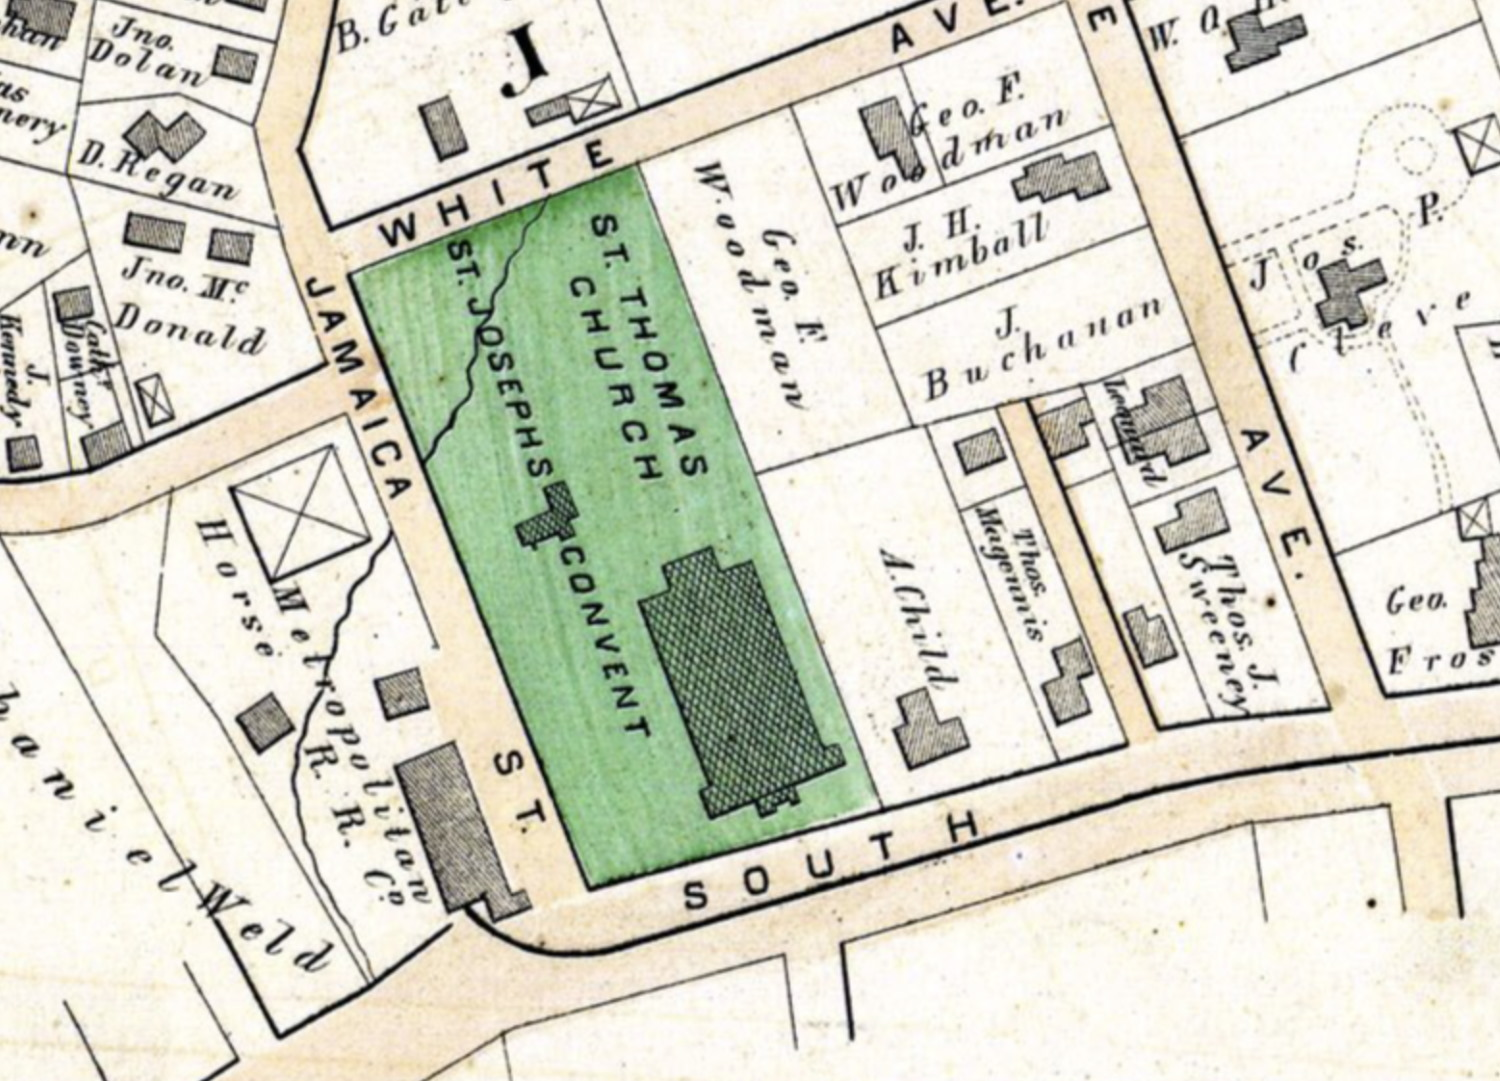 Plan of St. Thomas Aquinas Church, rectory and convent, 1874. From George W. Bromley,  Atlas of the City of Boston: West Roxbury